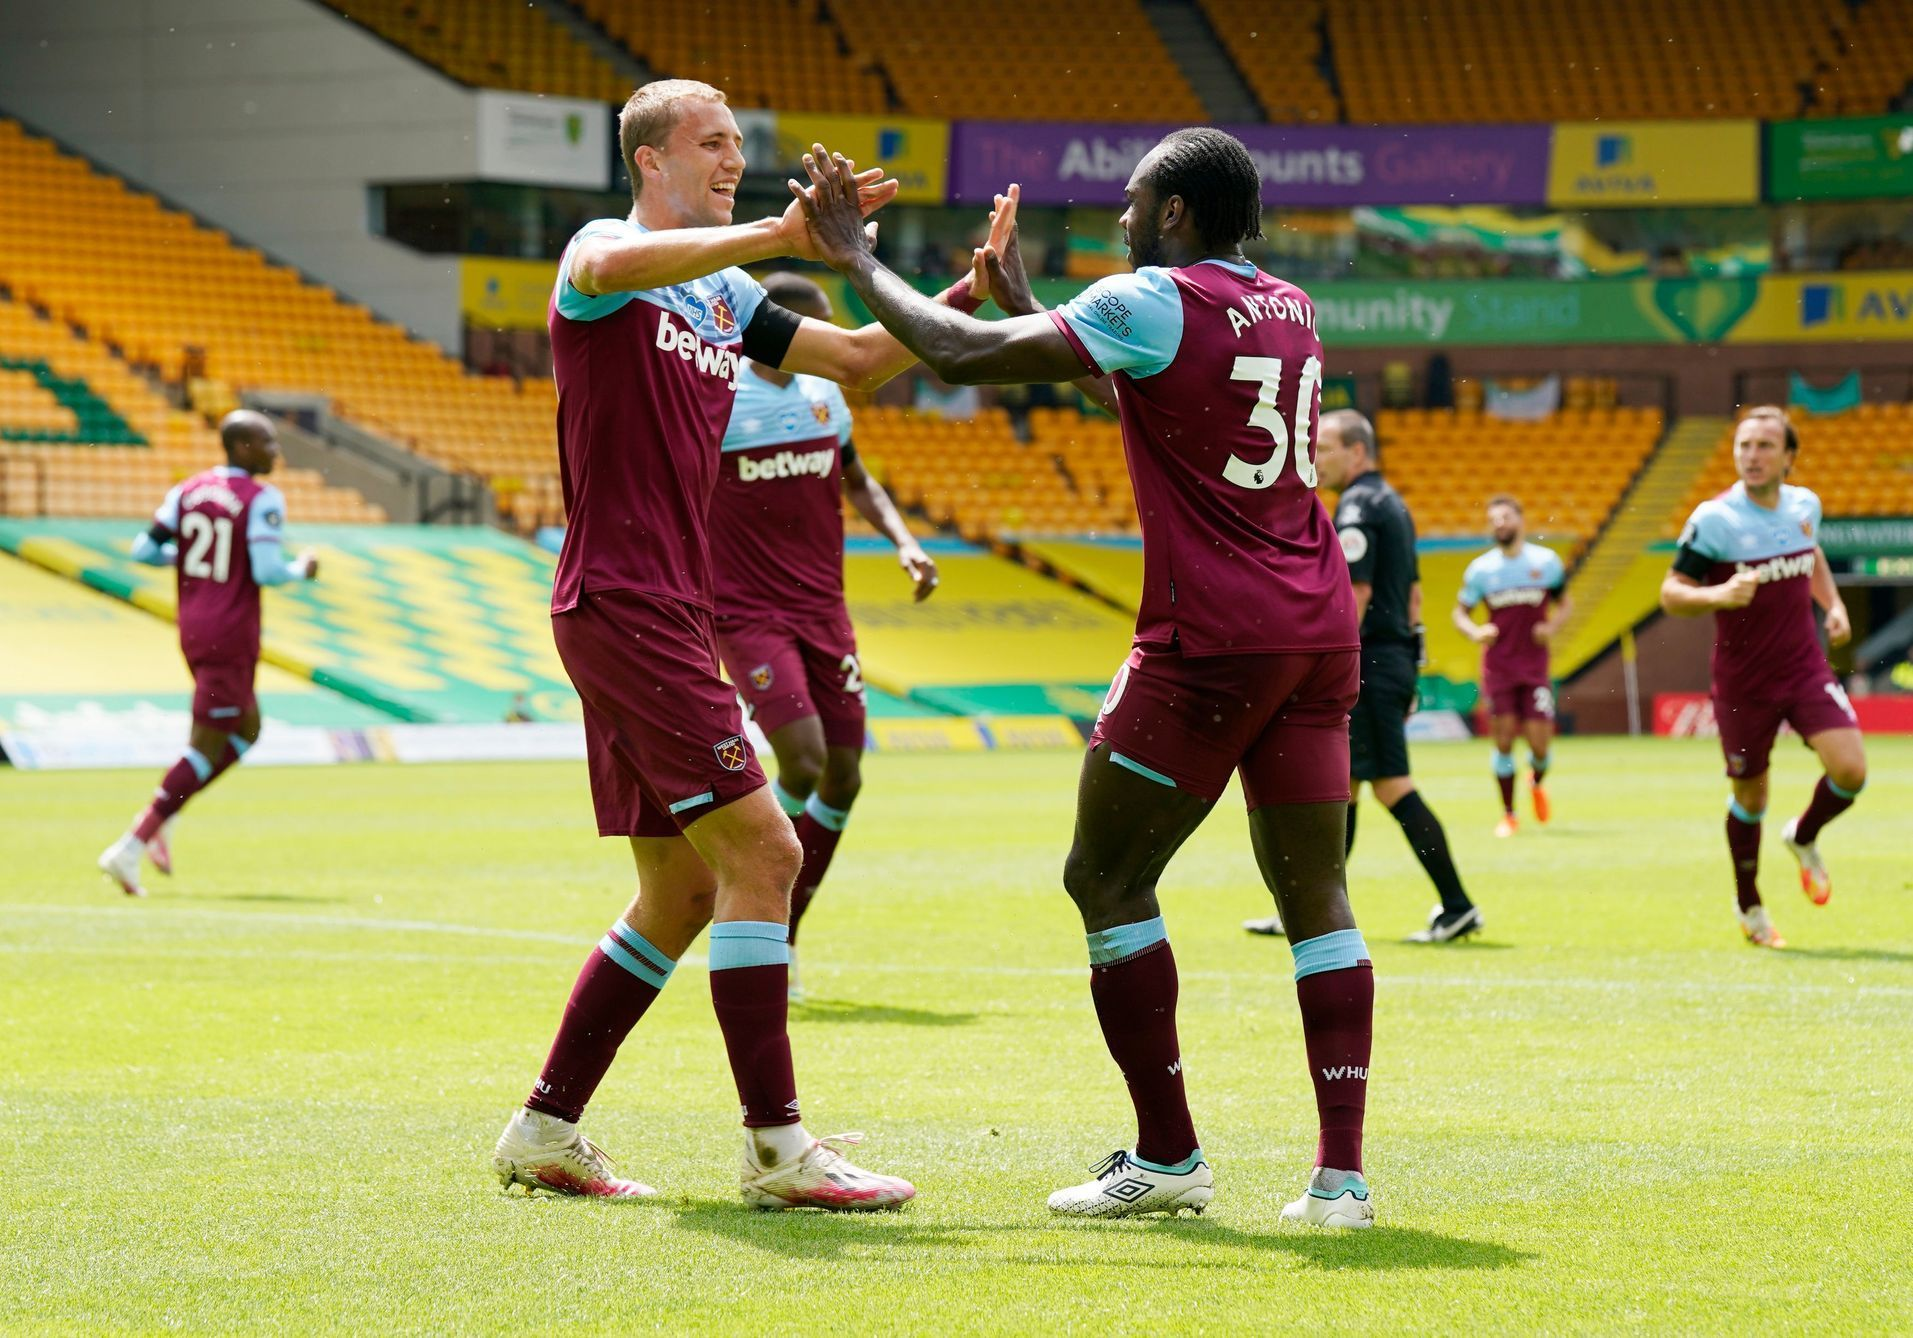 Premier League - Norwich City v West Ham United